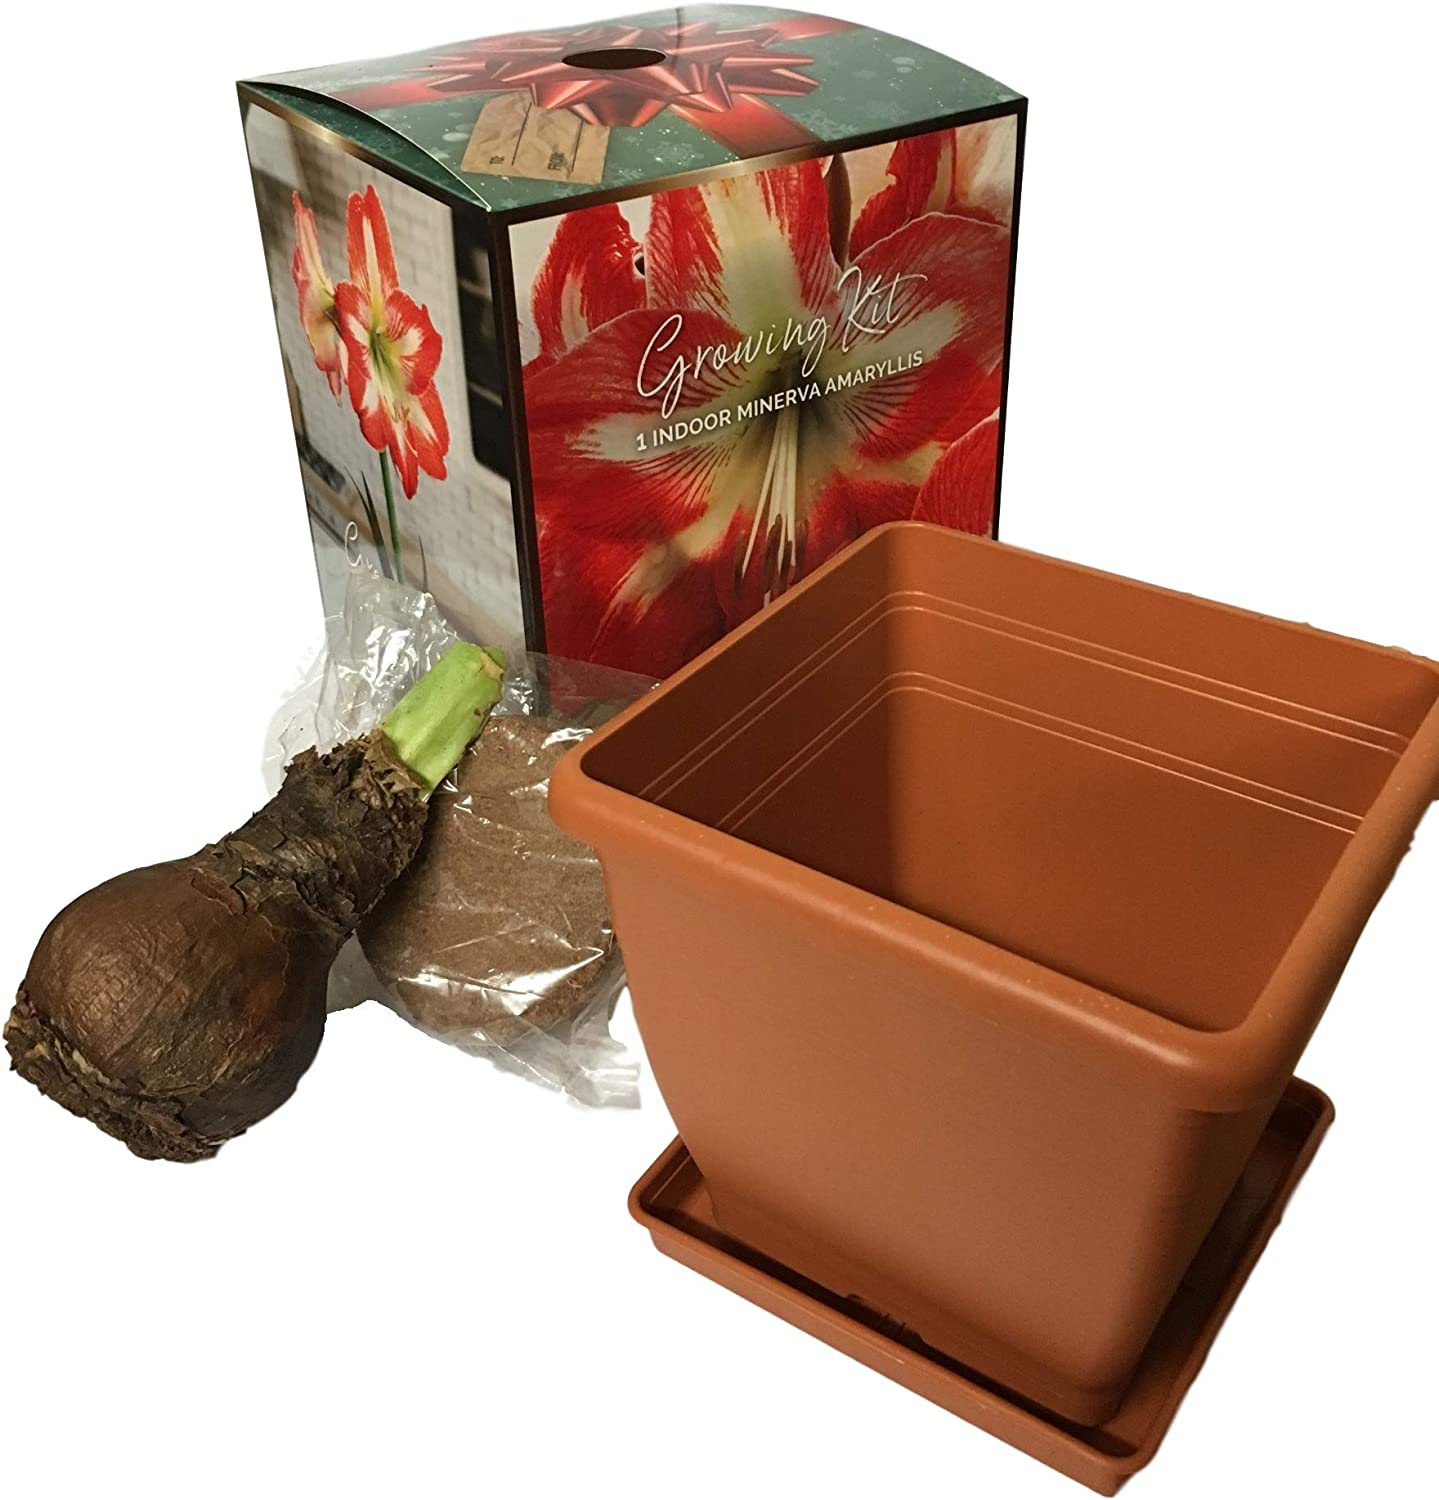 Includes Bulb Minerva Potted Amaryllis Gift Ready Soil /& Container